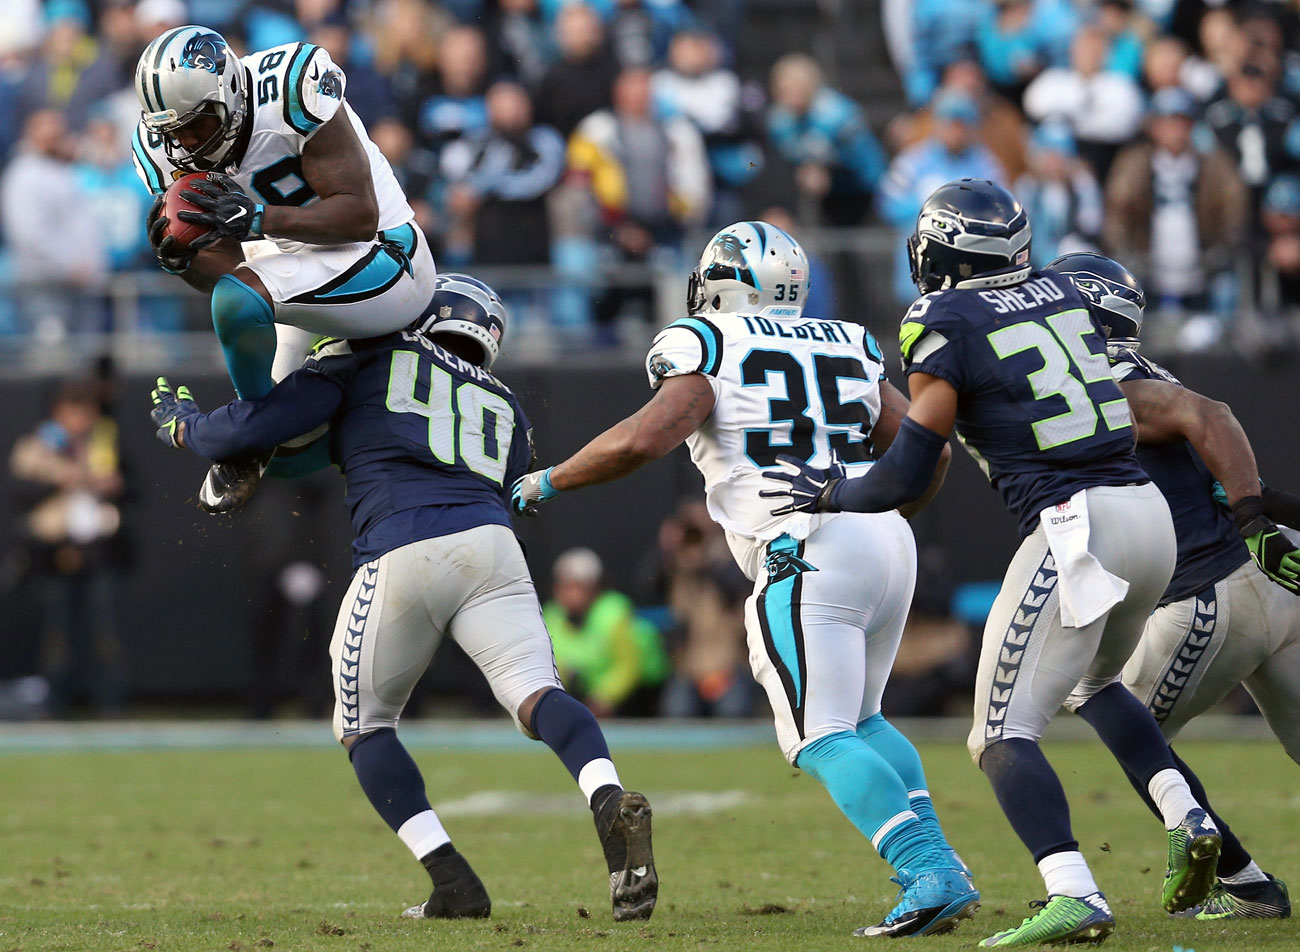 Thomas Davis leaped high to recover the onside kick in the Panthers-Seahawks divisonal round game.